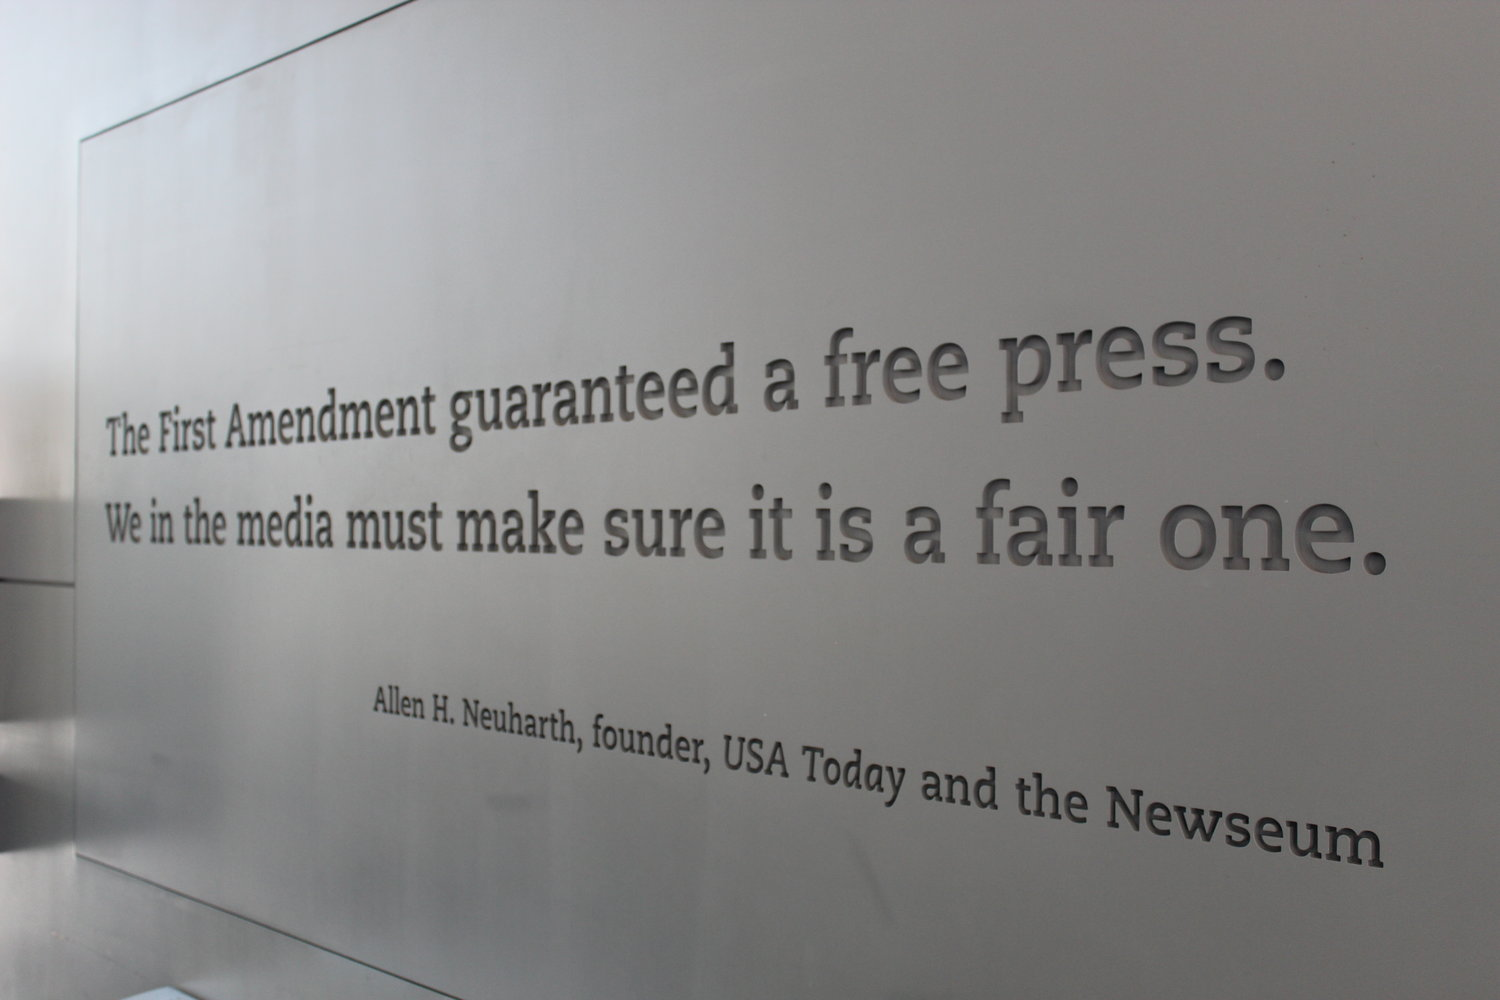 Inscribed into the walls of the Newseum are quotes pertaining to the power of the press.